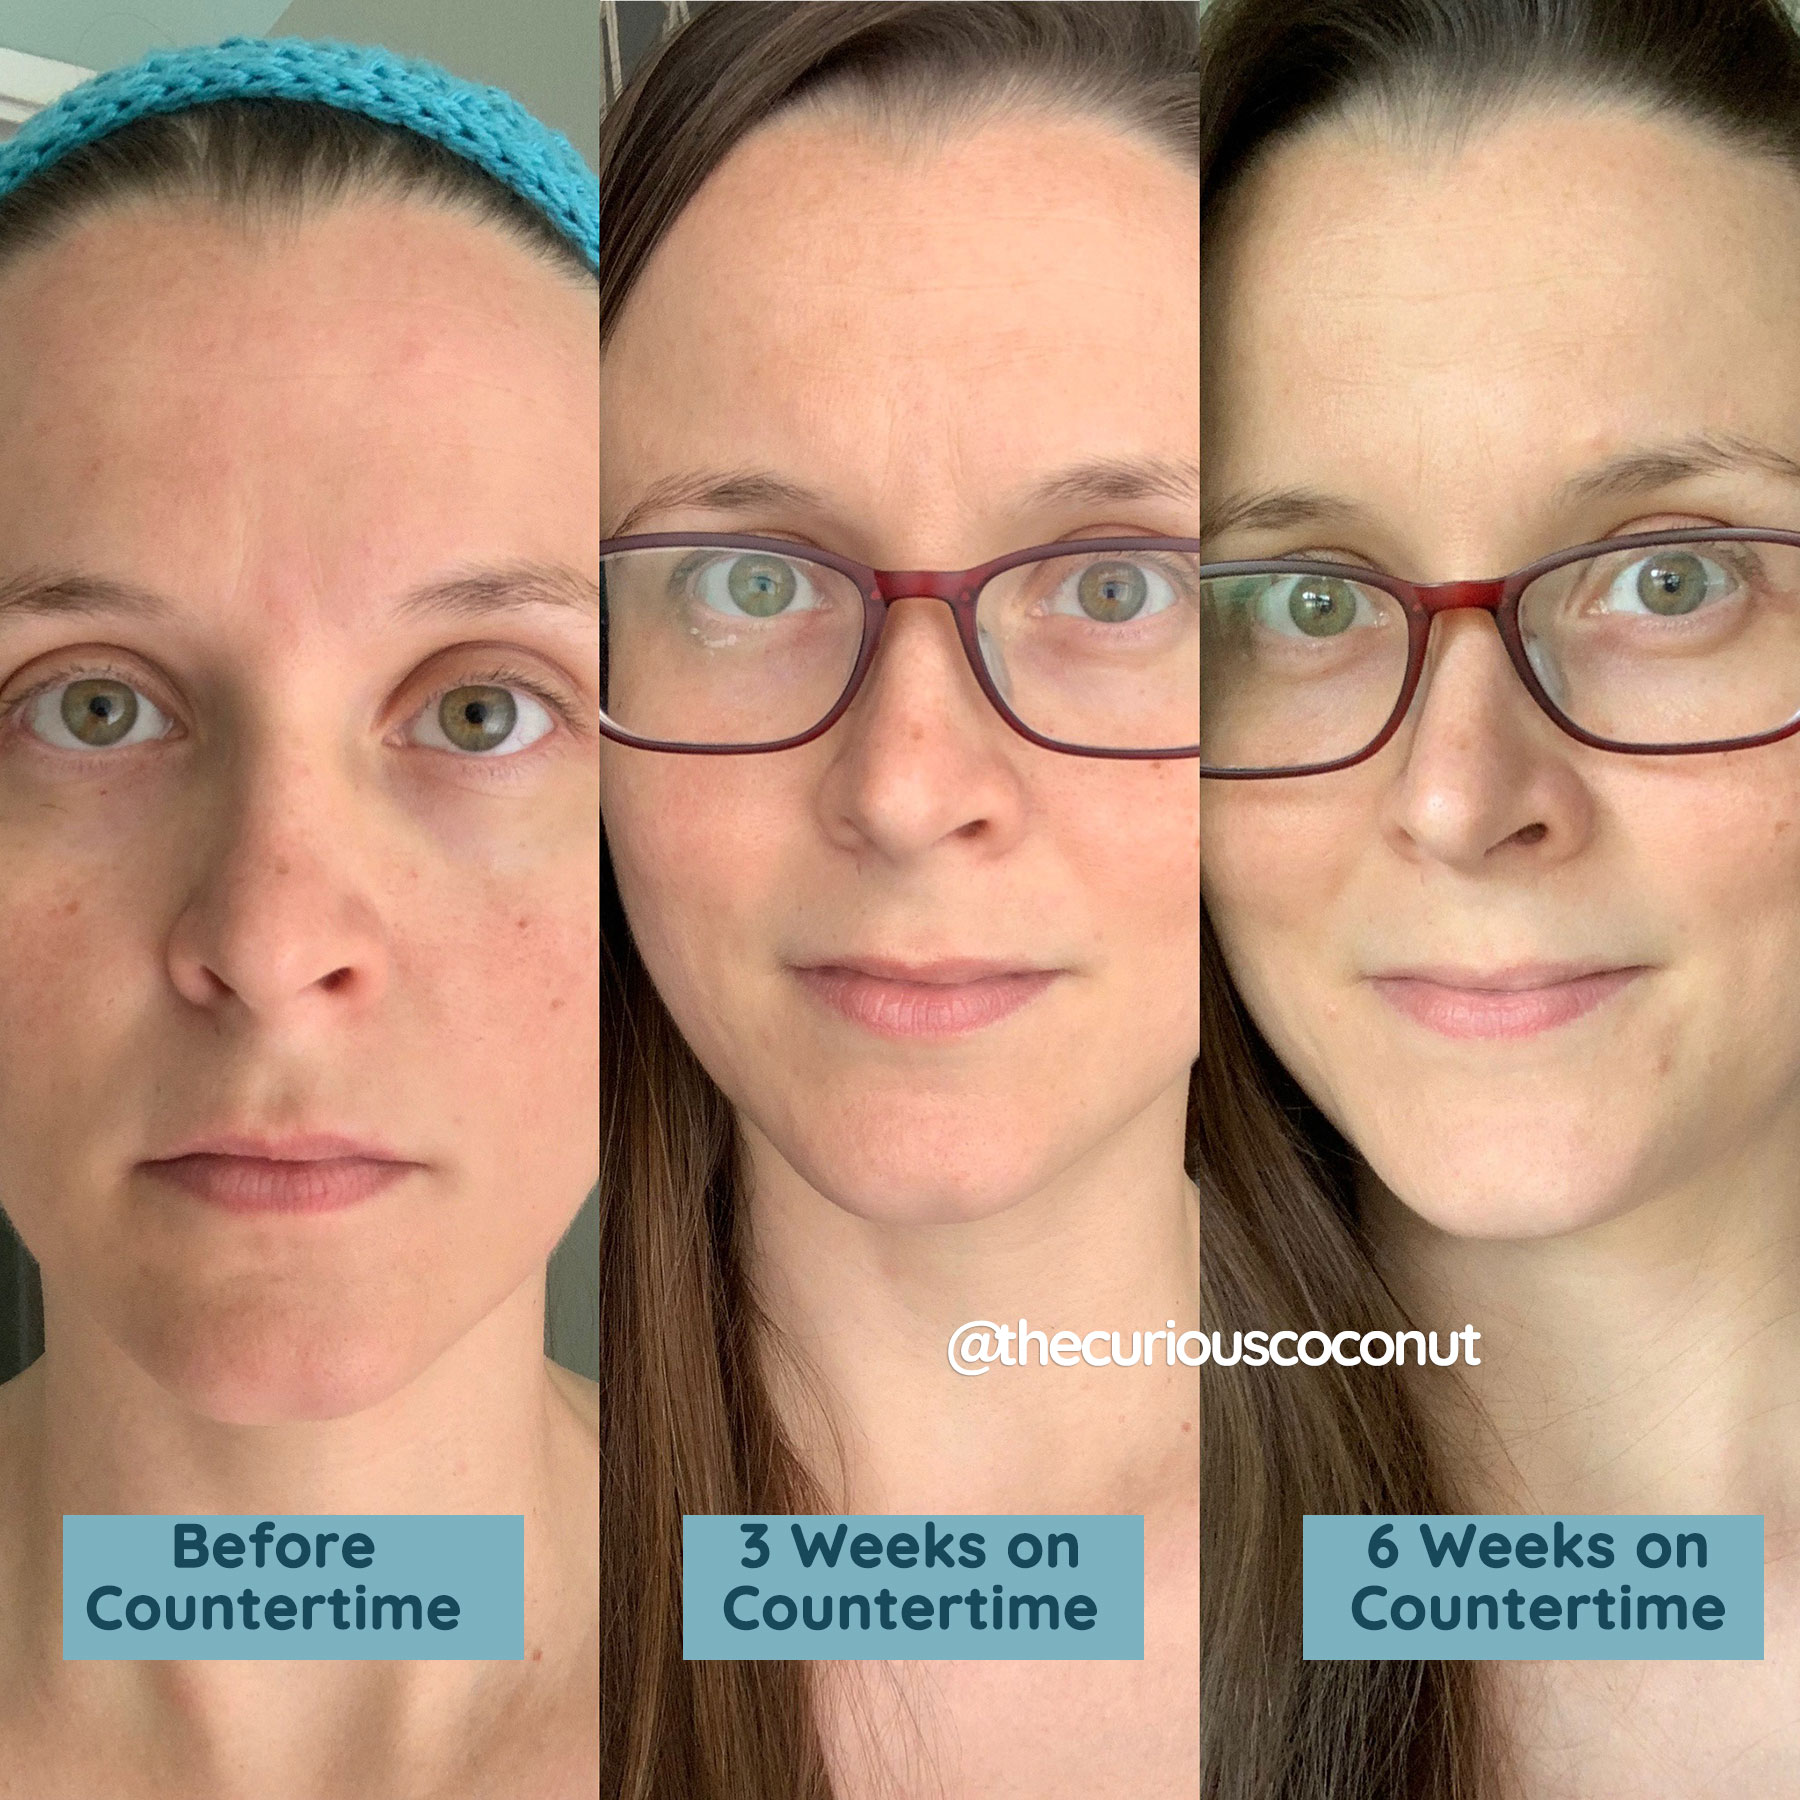 before and after countertime 6 weeks